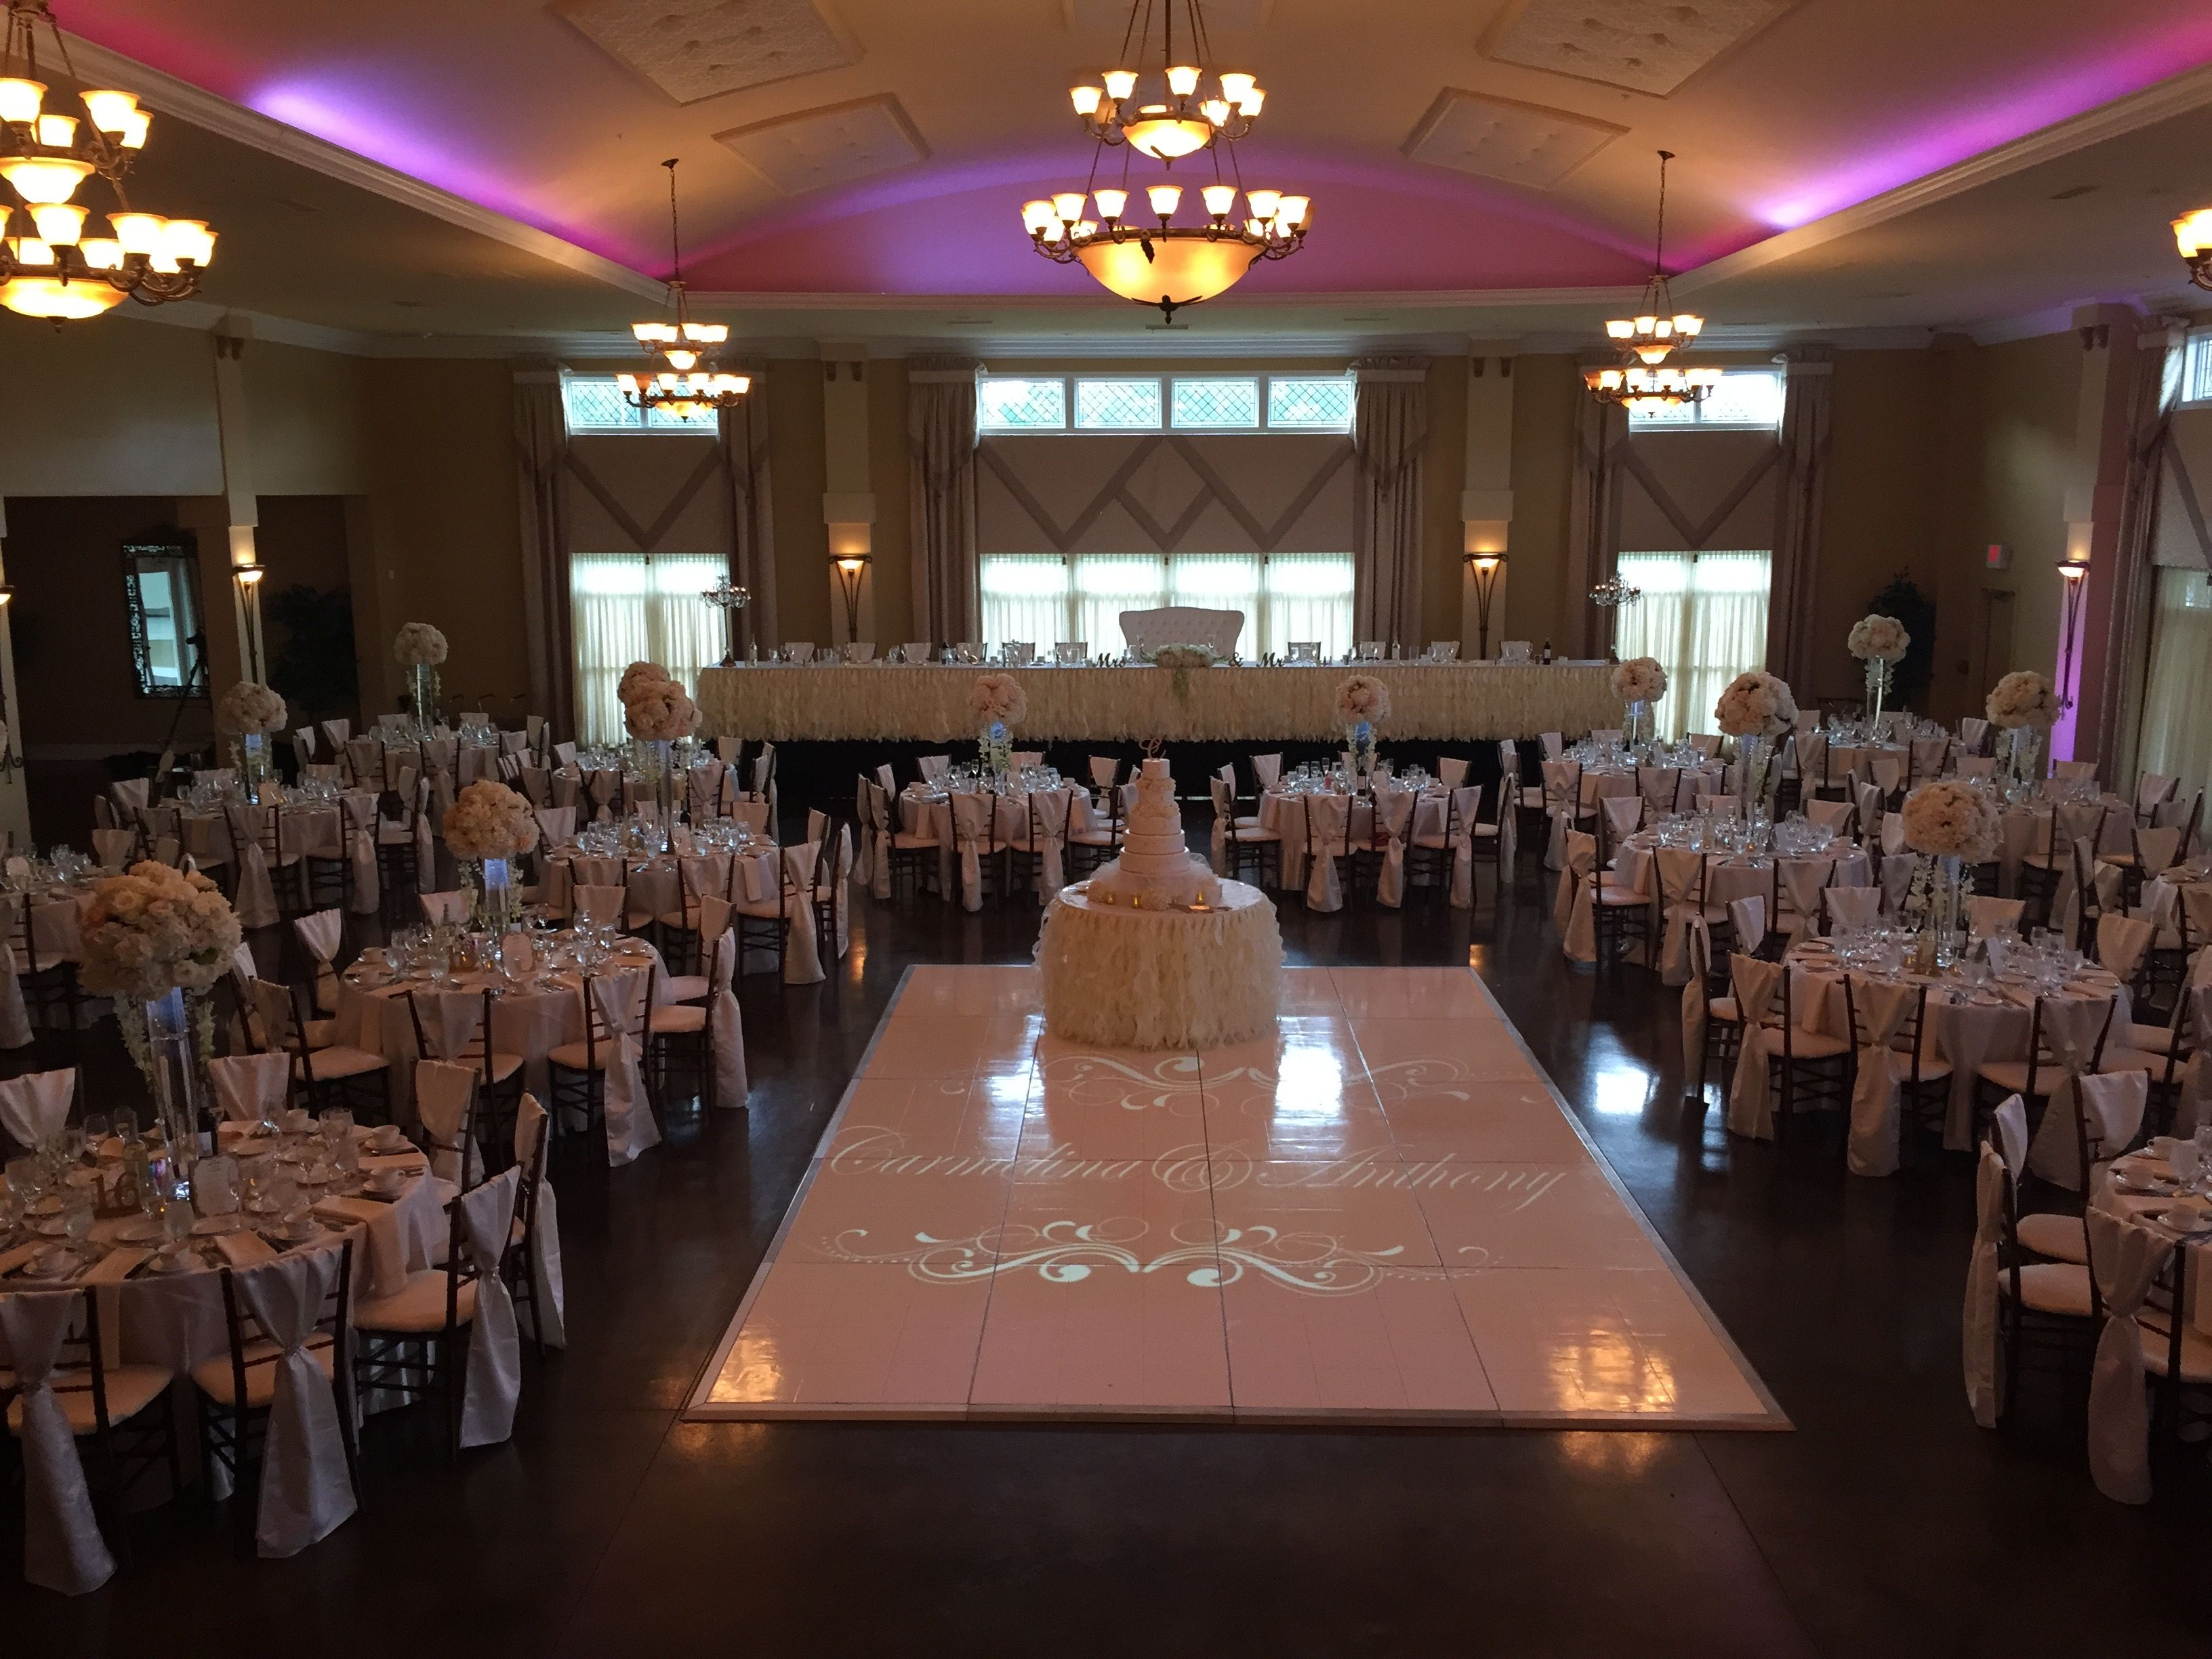 Elegant Wedding In The Amore Grand Ballroom Whitedancefloor Avantimansion Avantimansionballro Outdoor Wedding Venues Elegant Wedding Venues Wedding Venues